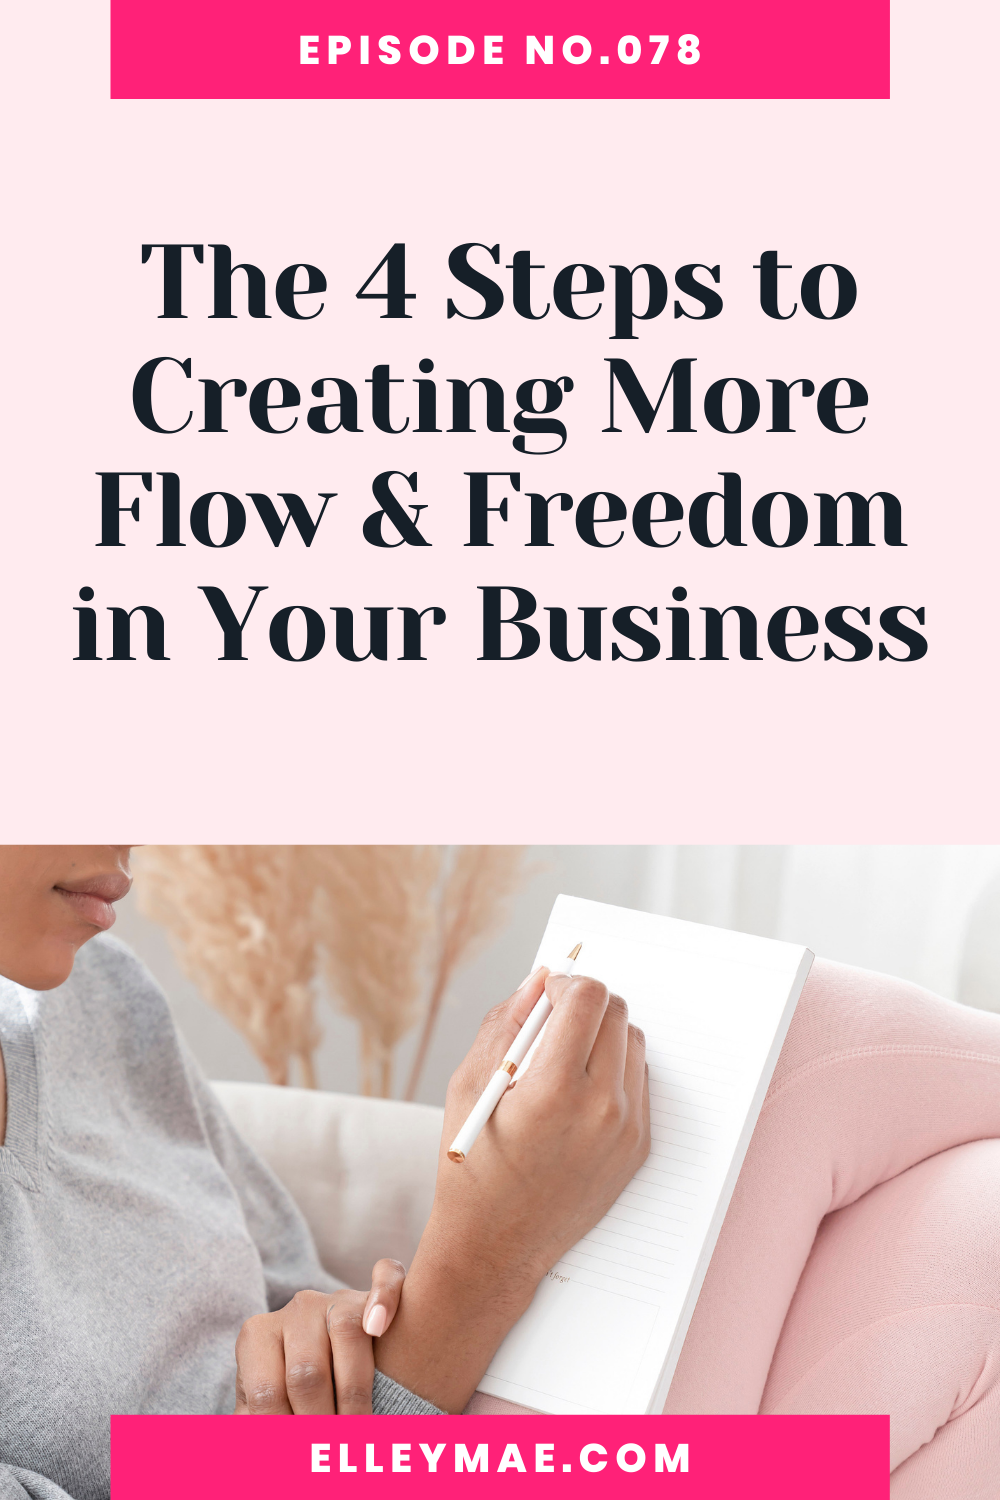 078. The Mindset You Need to Create More Flow & Freedom in Your Business